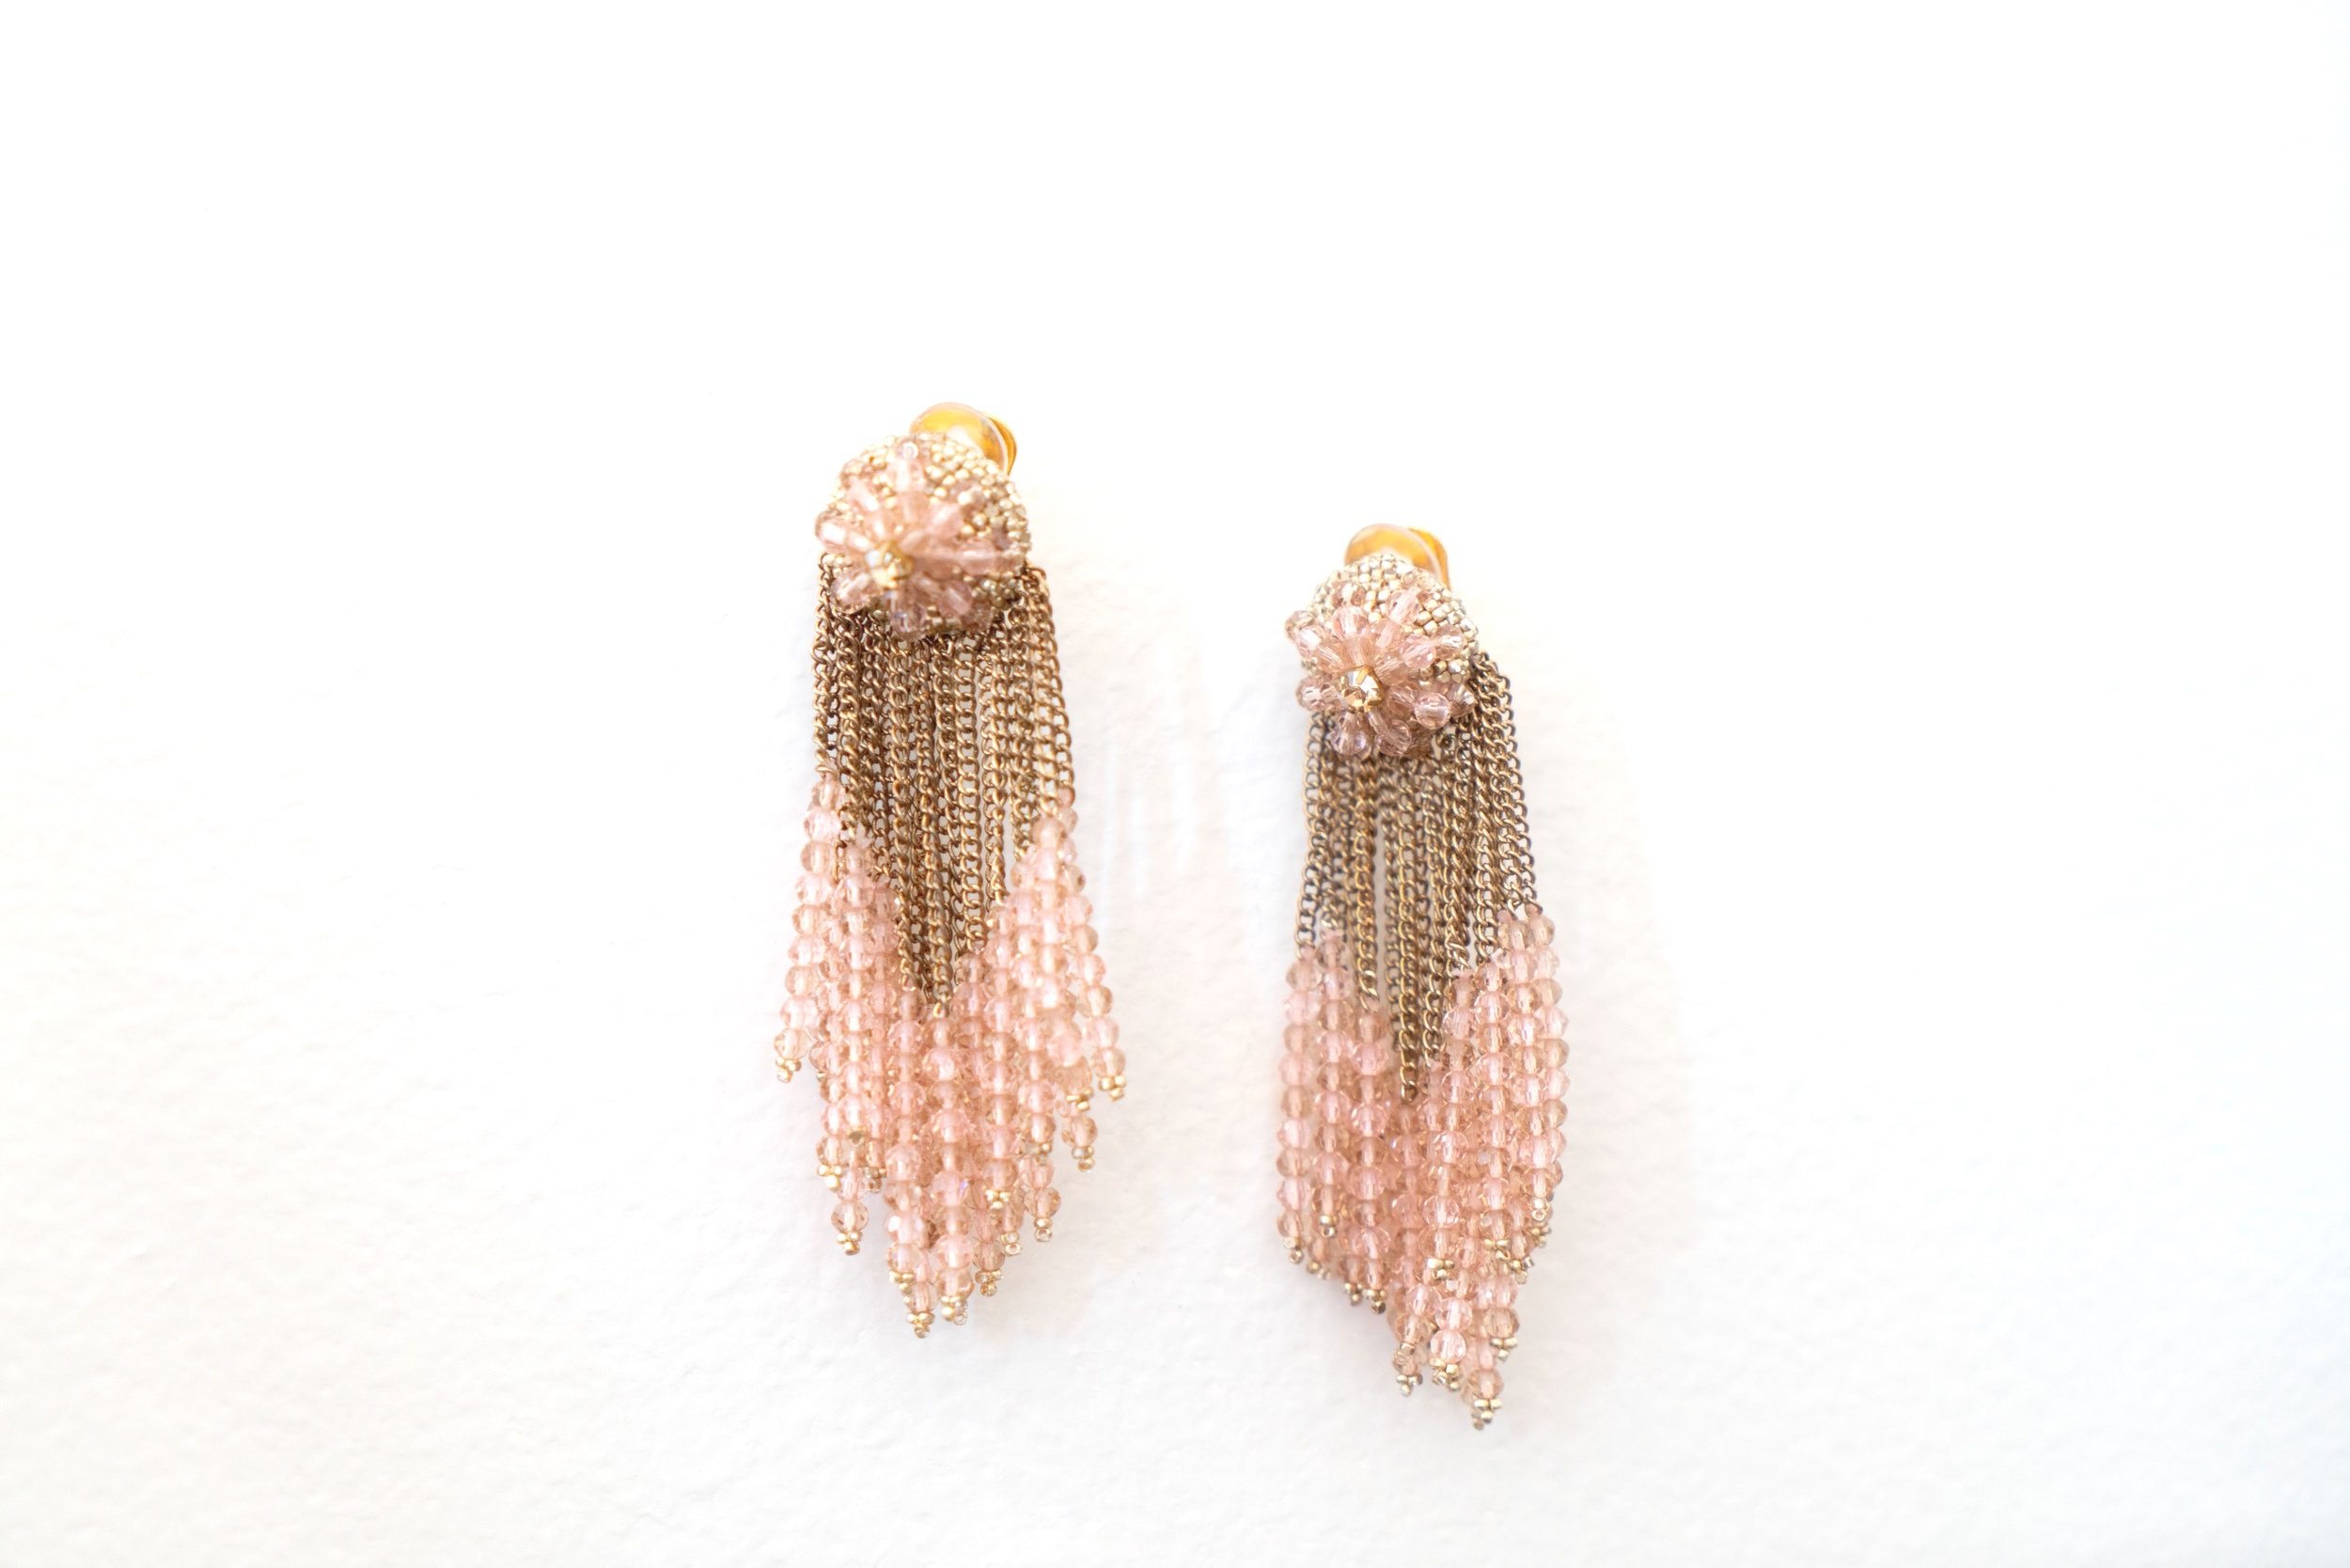 12. Oscar de la Renta ✳︎ Earrings ✳︎